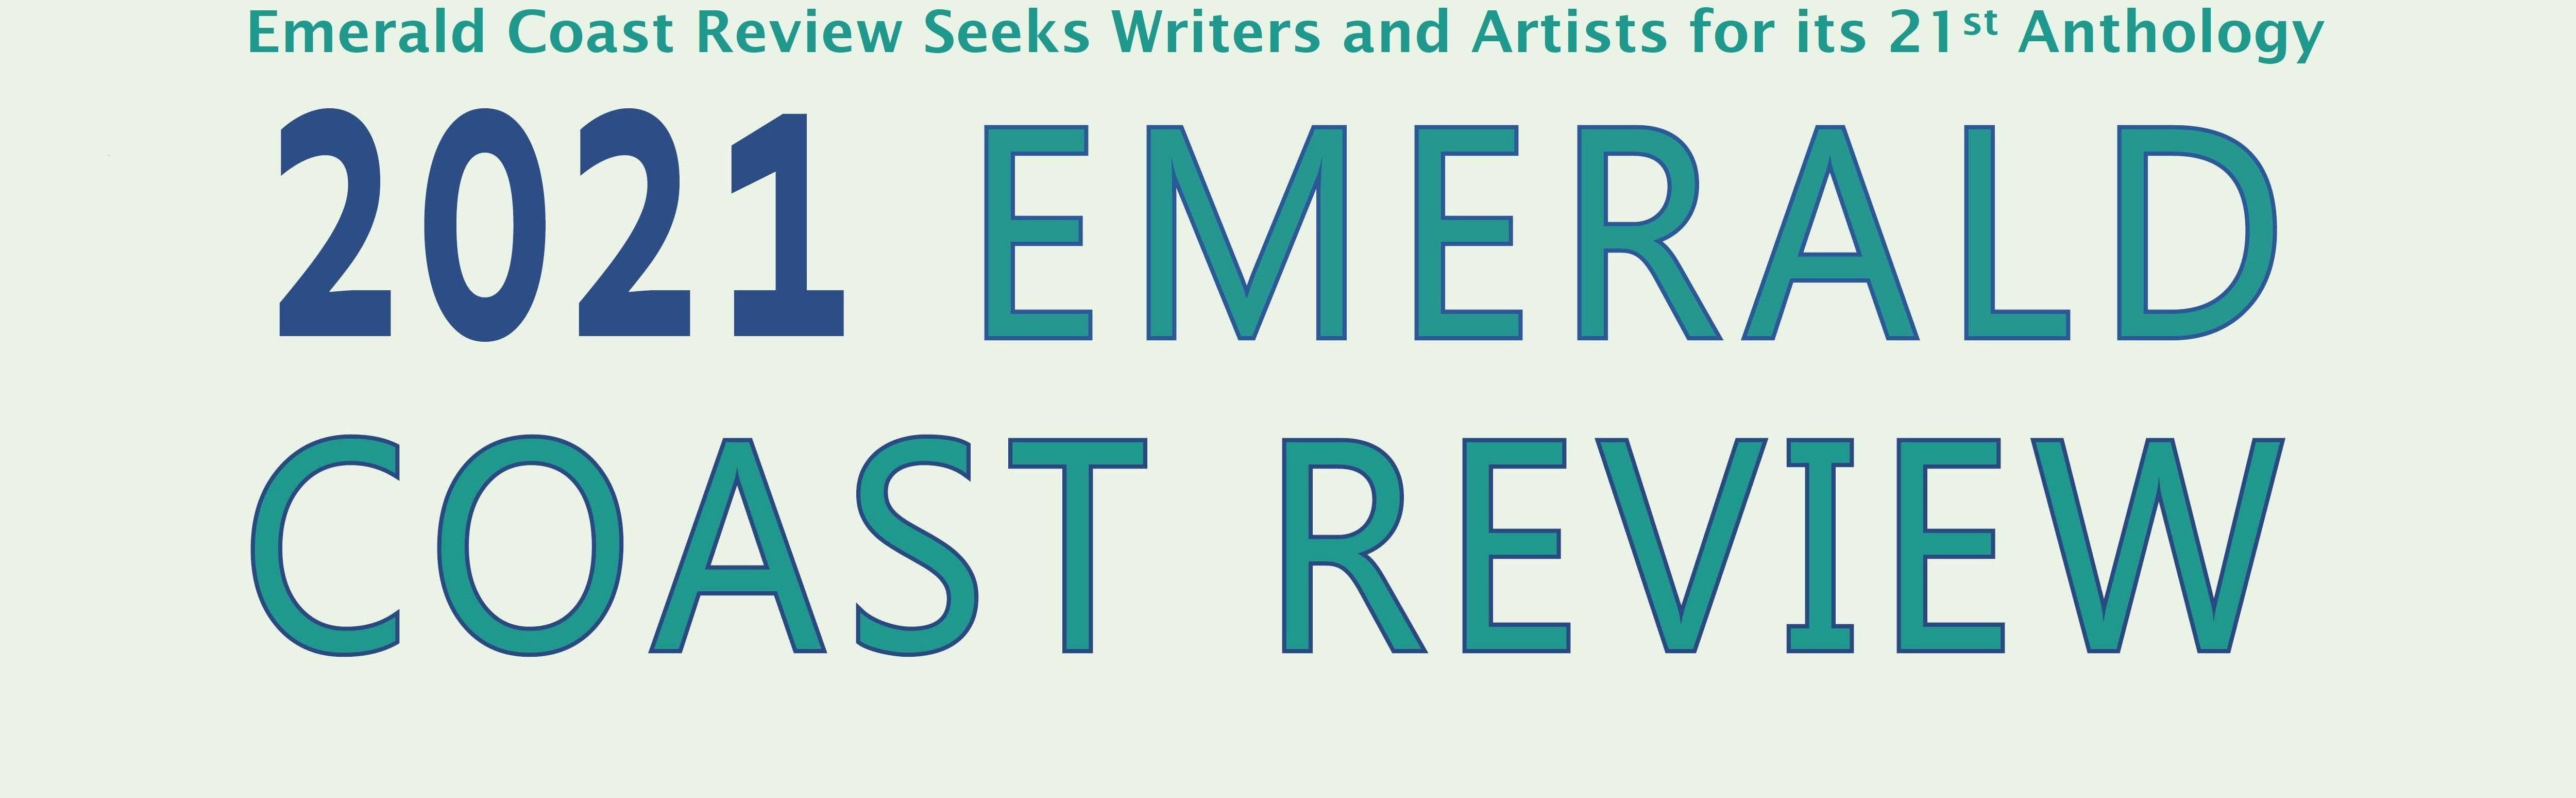 Emerald Coast Review Seeks Writers and Artists for its 21st Anthology